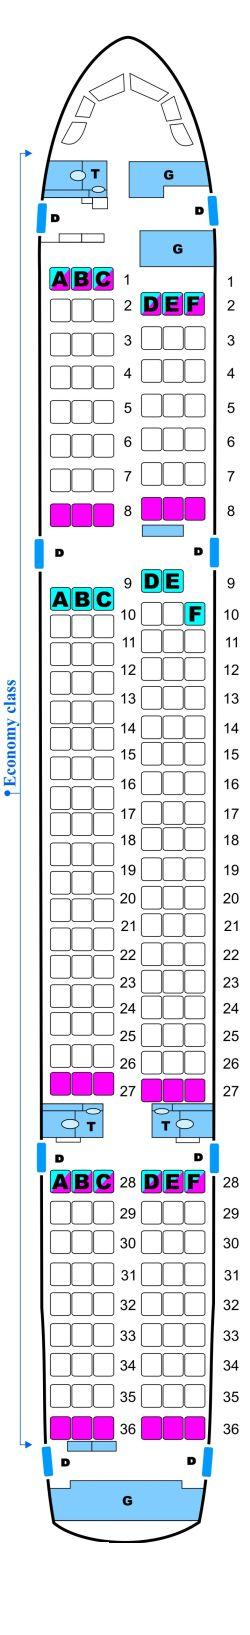 Seat map for Skyservice Airlines Boeing B757 200